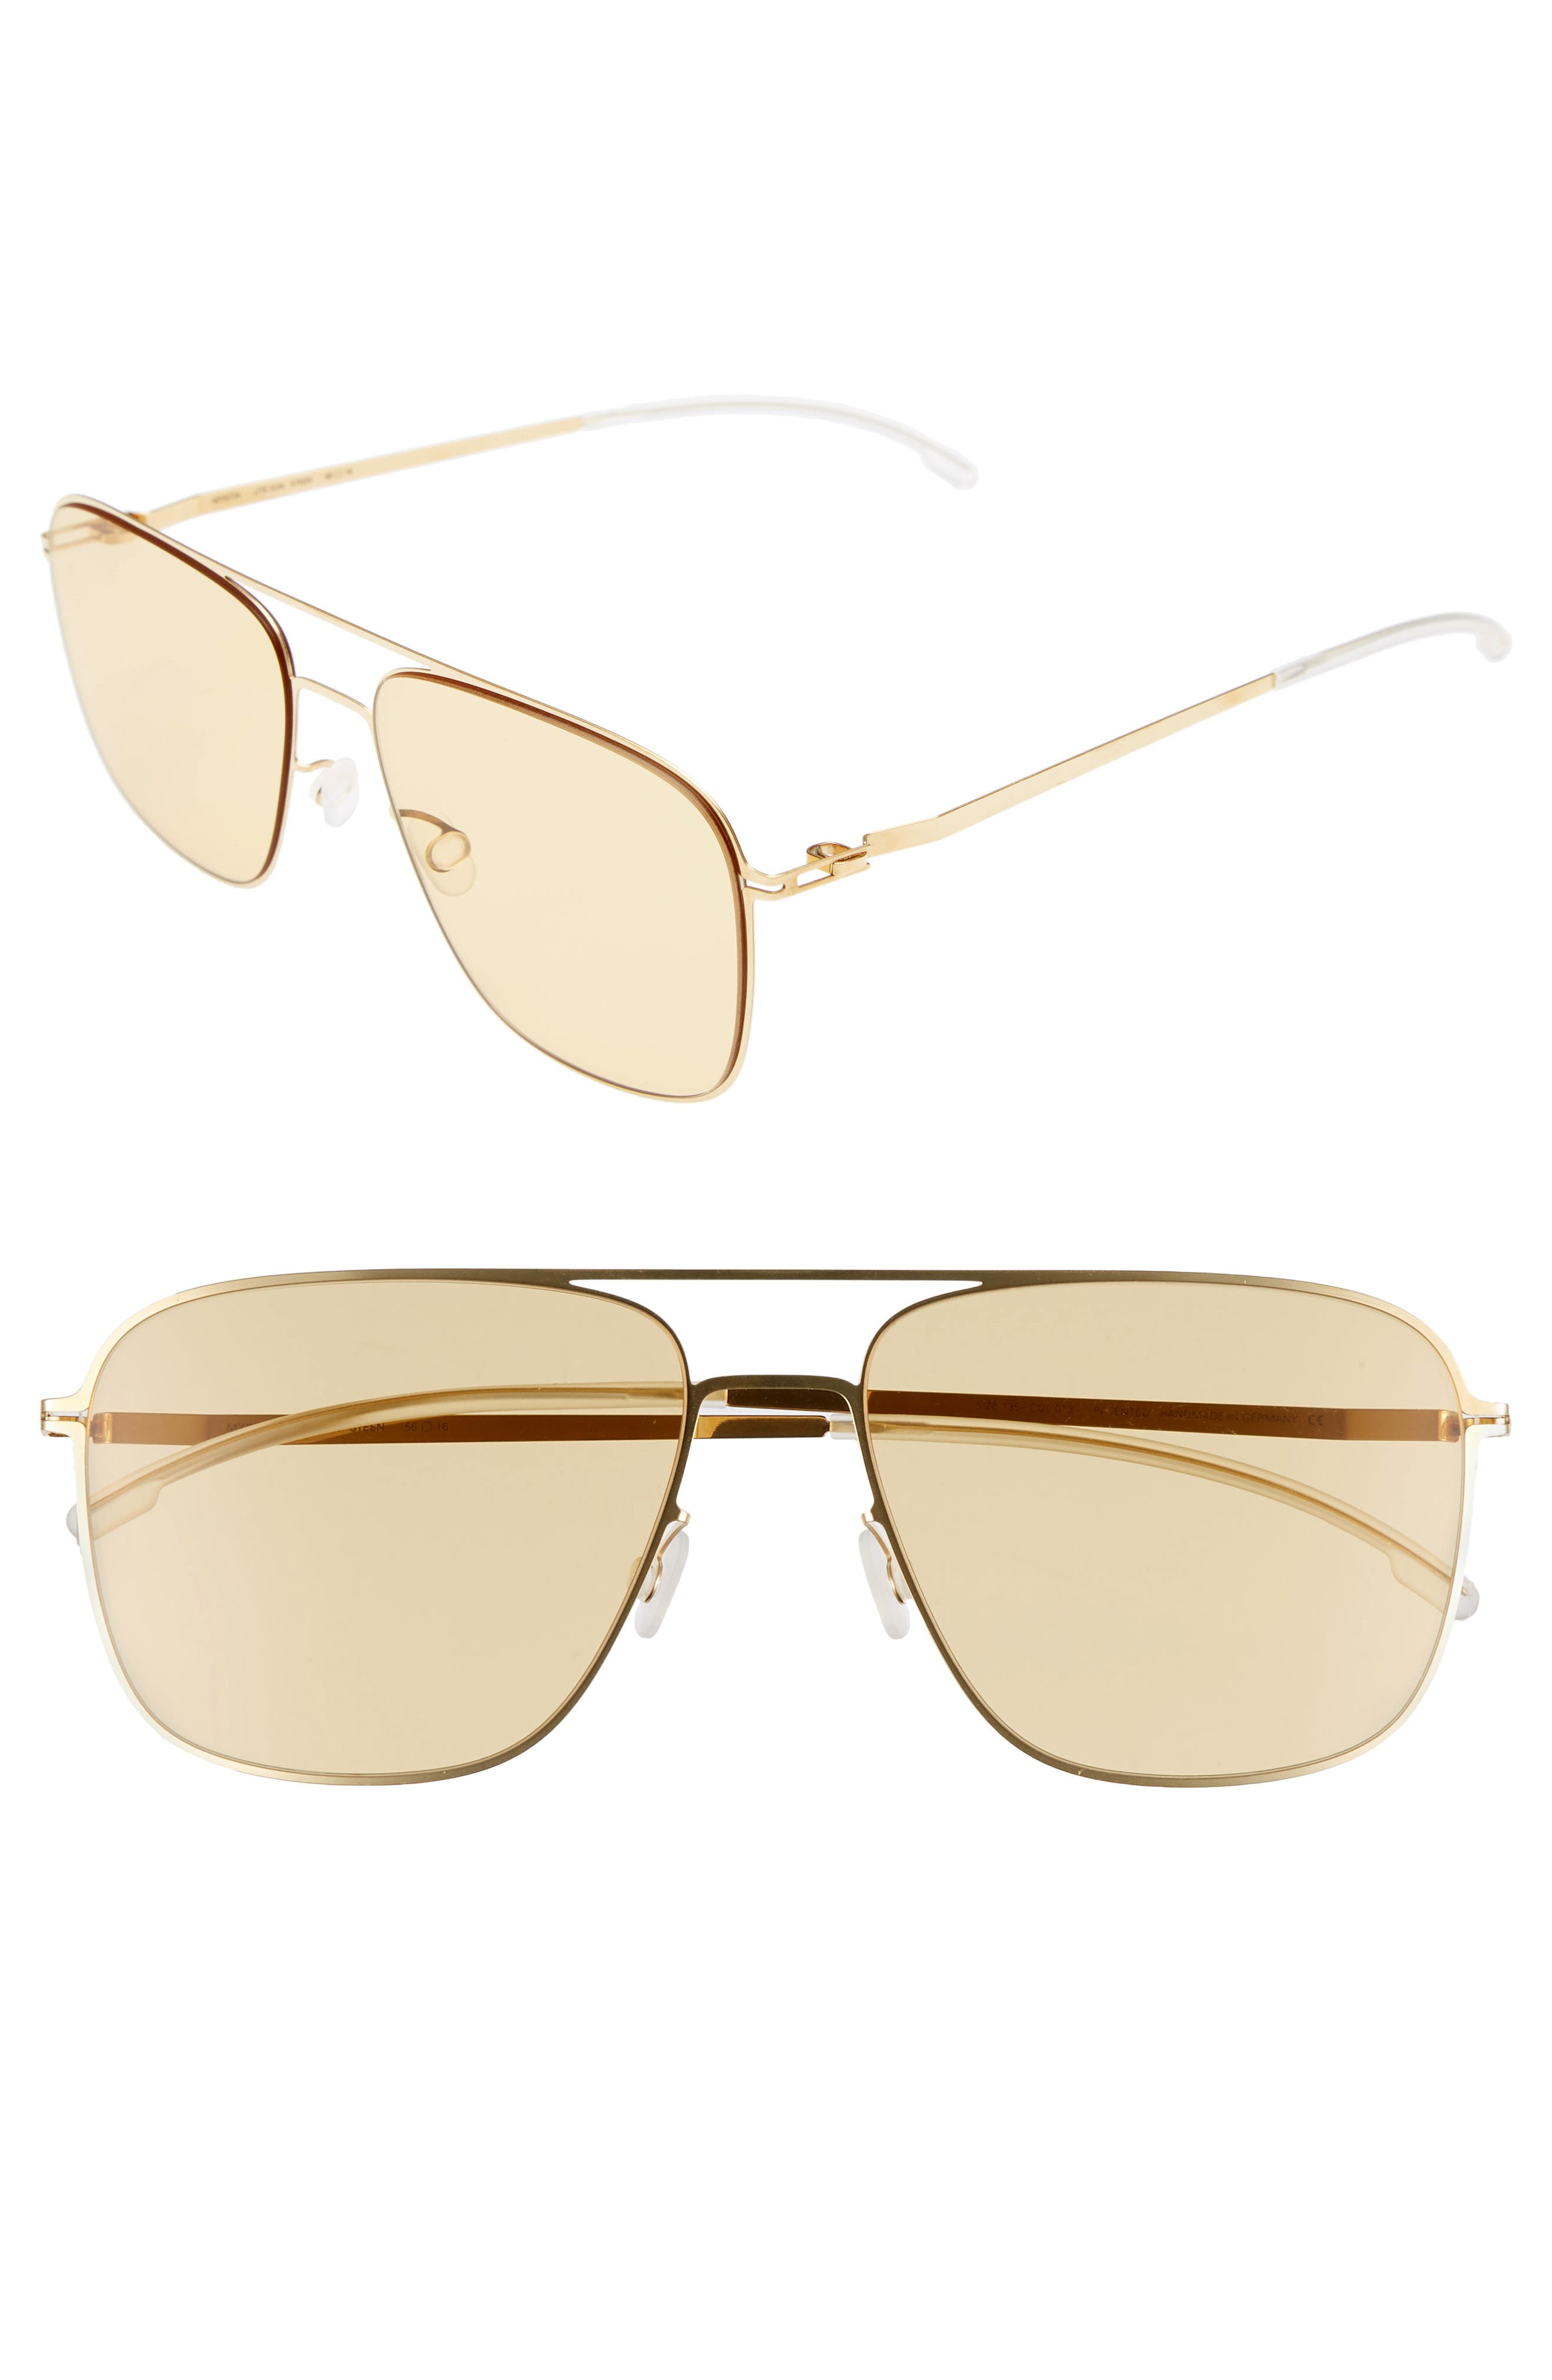 Steen 56mm Aviator Sunglasses,                         Main,                         color, 228